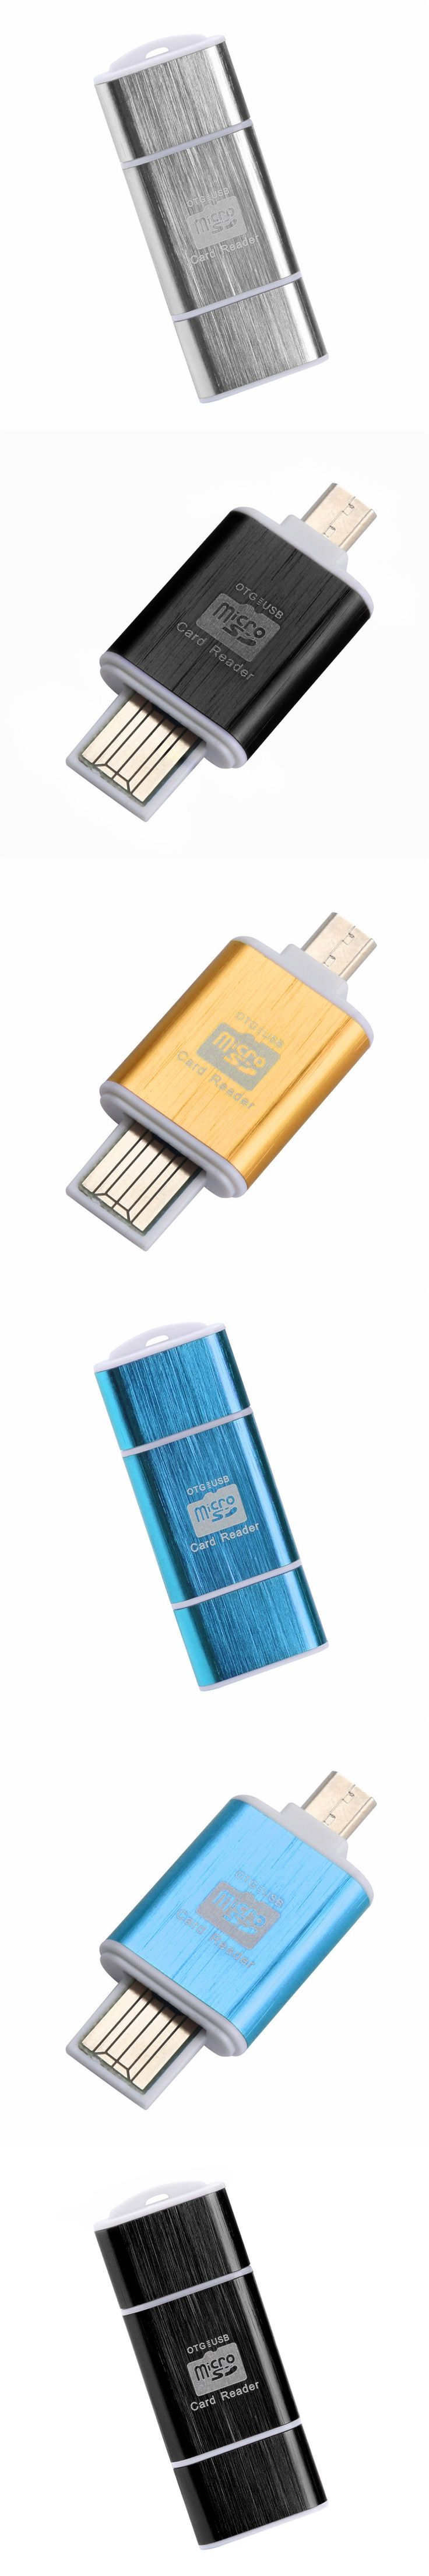 2In1 Micro SD OTG USB 2.0 Flash Drive Card Reader For Smartphone PC Tablet A7